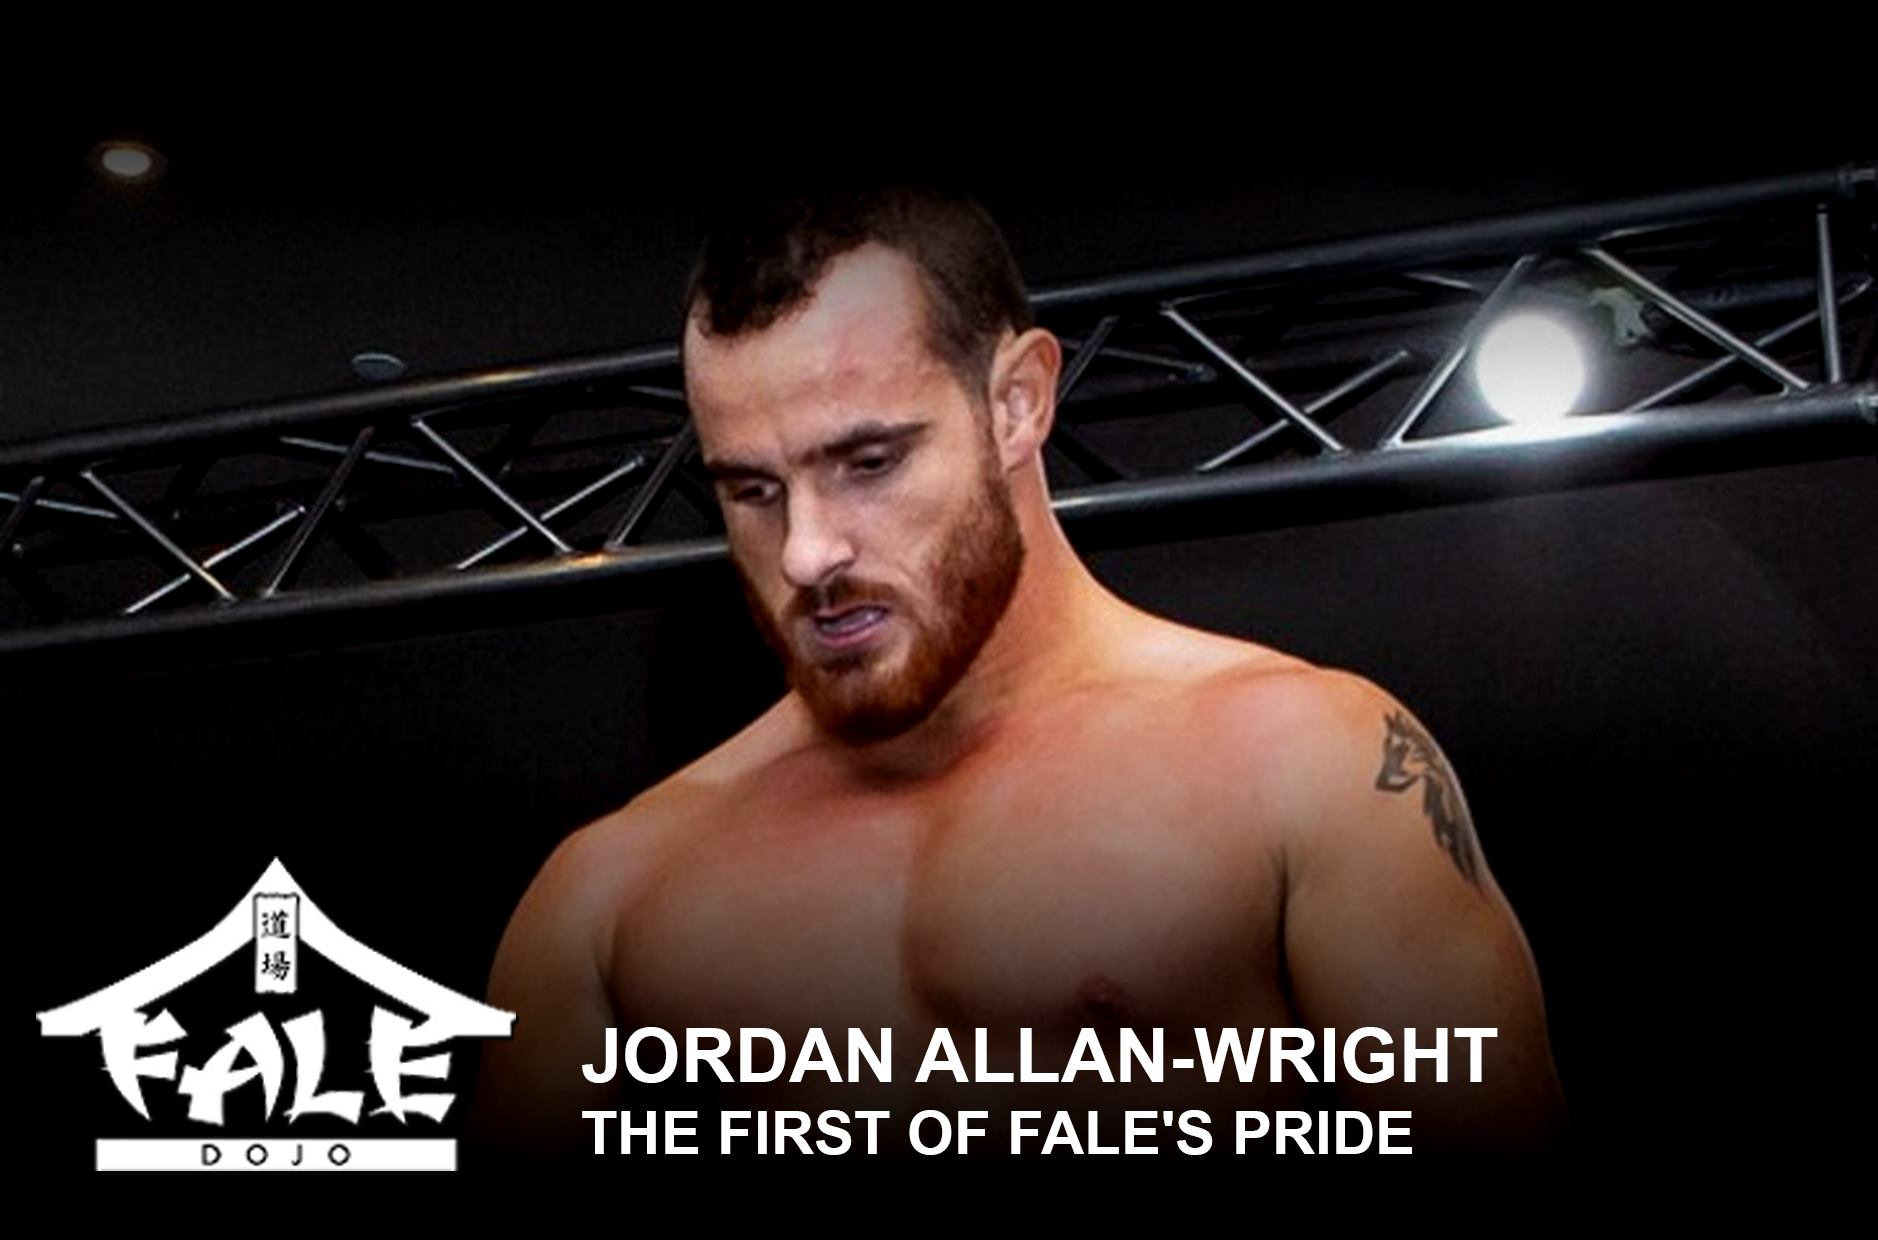 Jordan Allan-Wright – The First of Fale's Pride